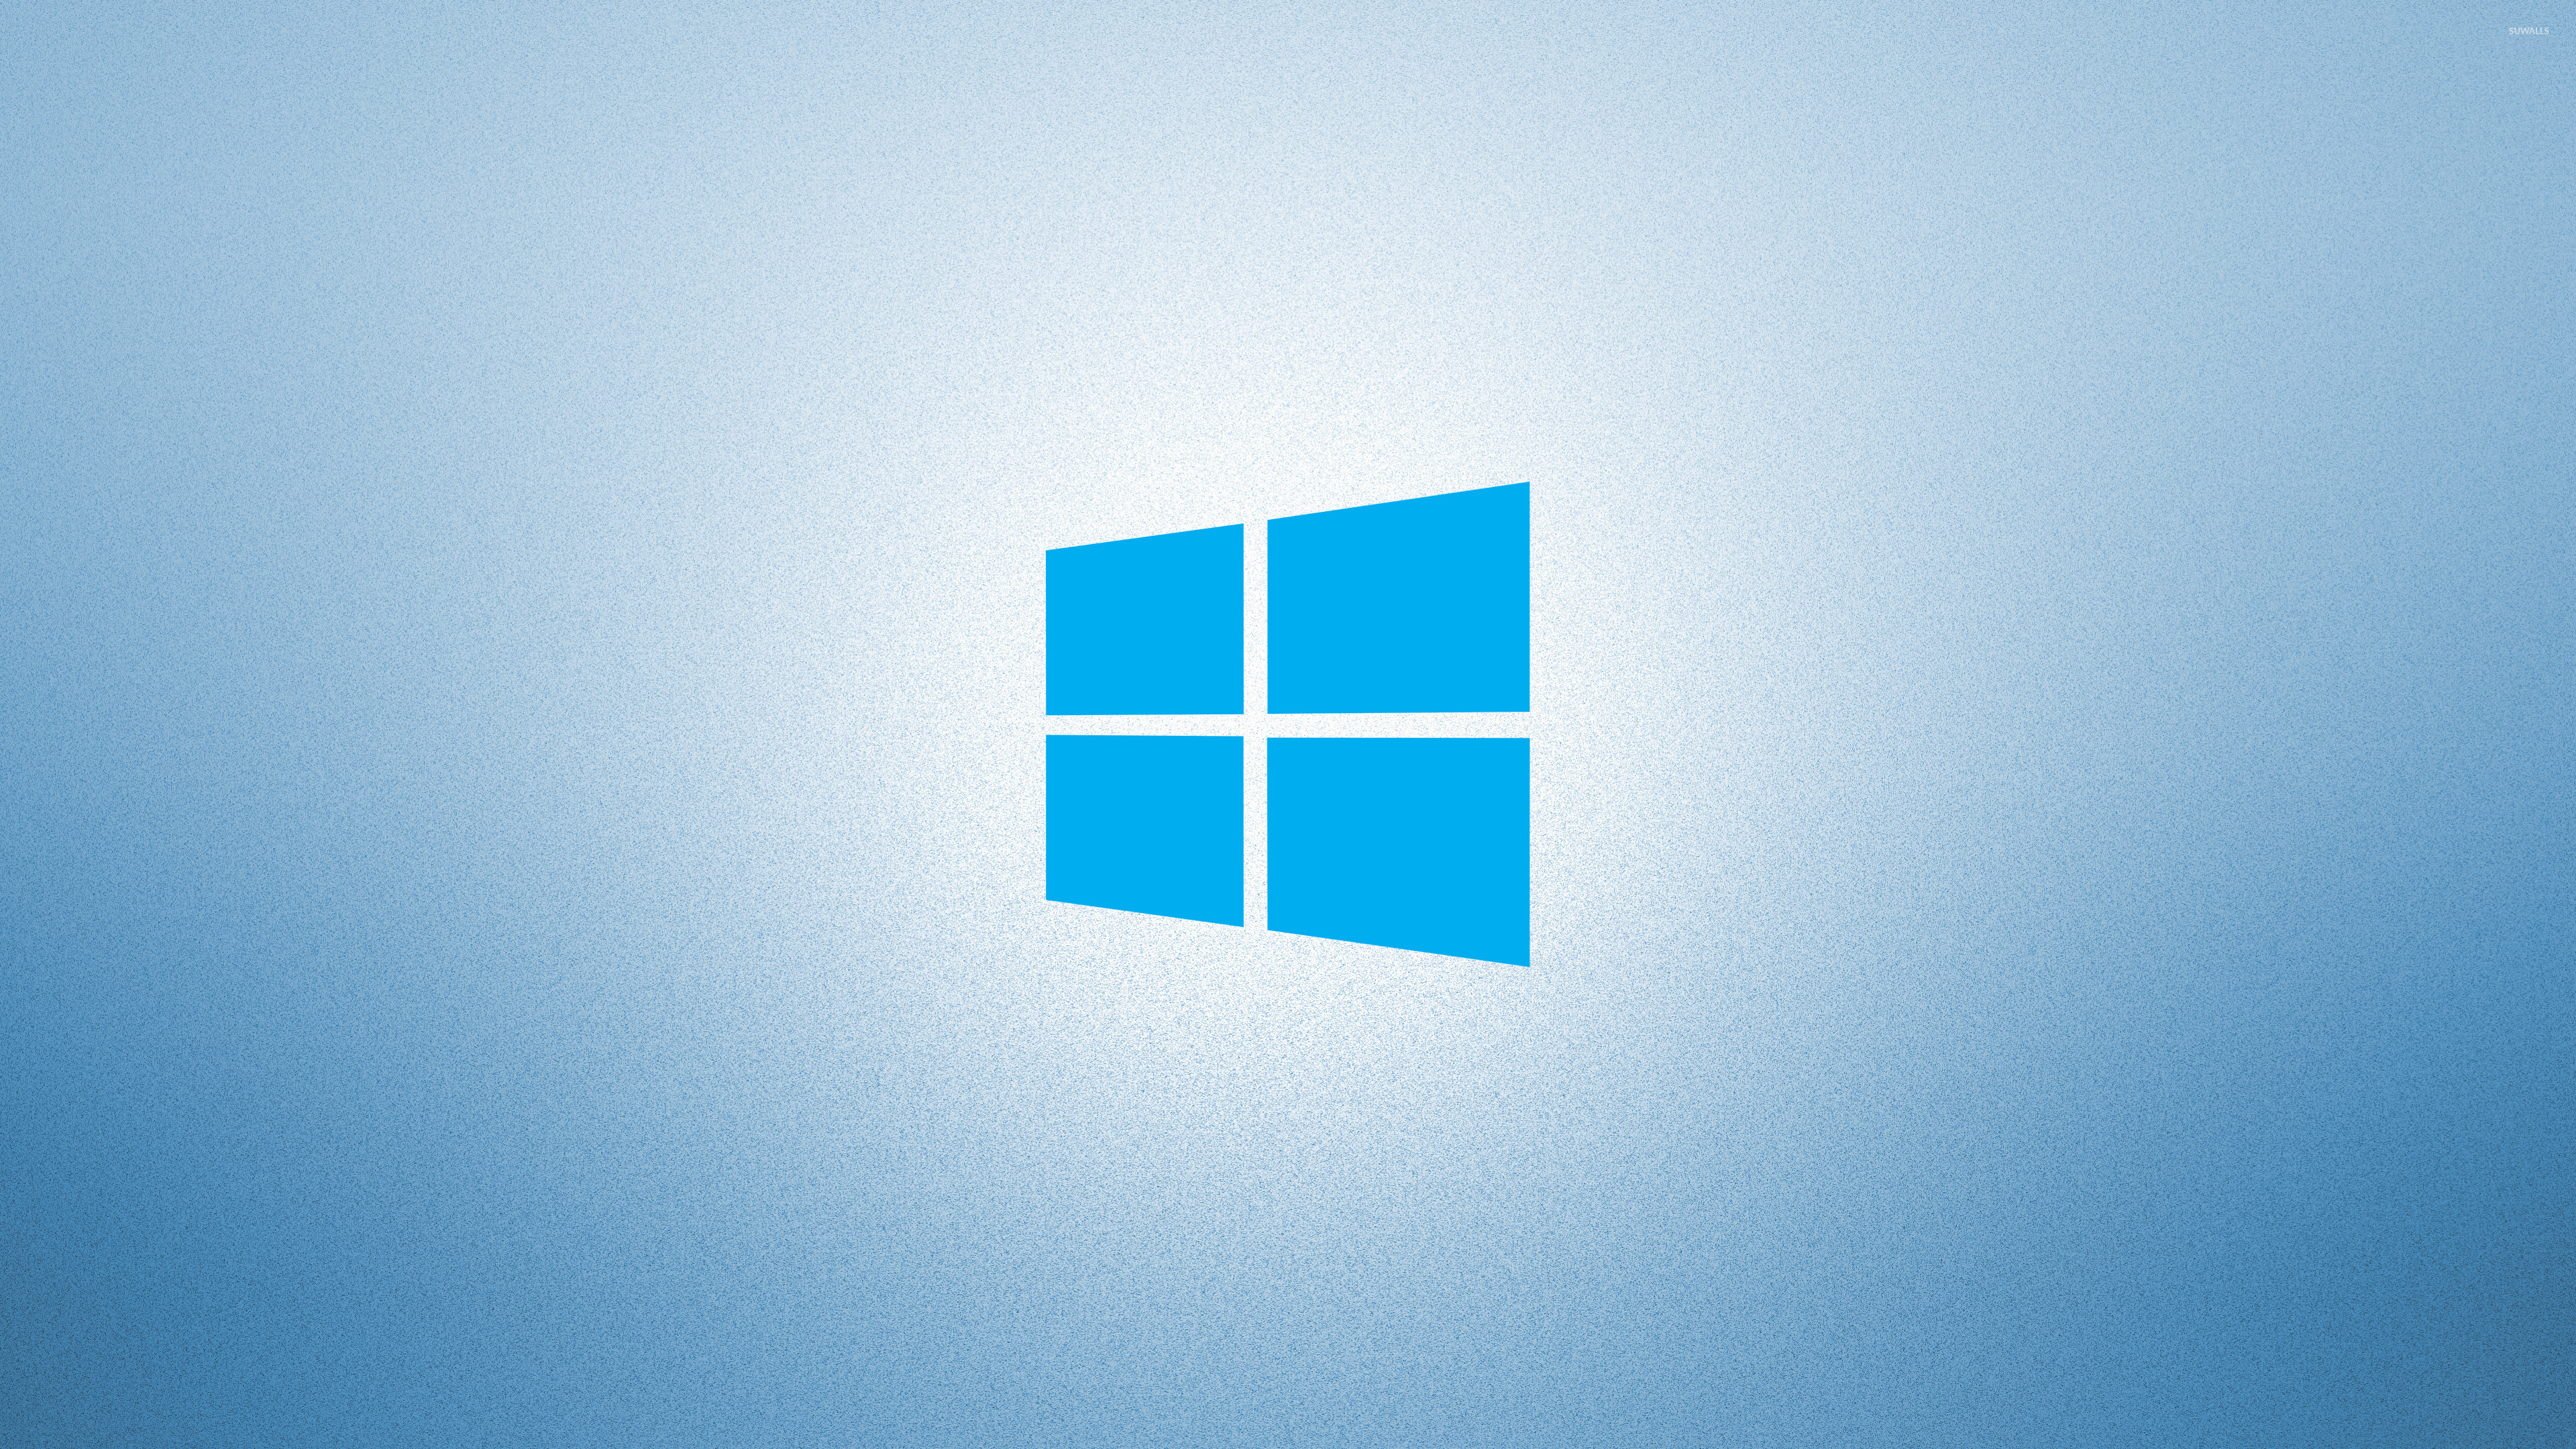 windows 10 on light blue simple blue logo wallpaper - computer